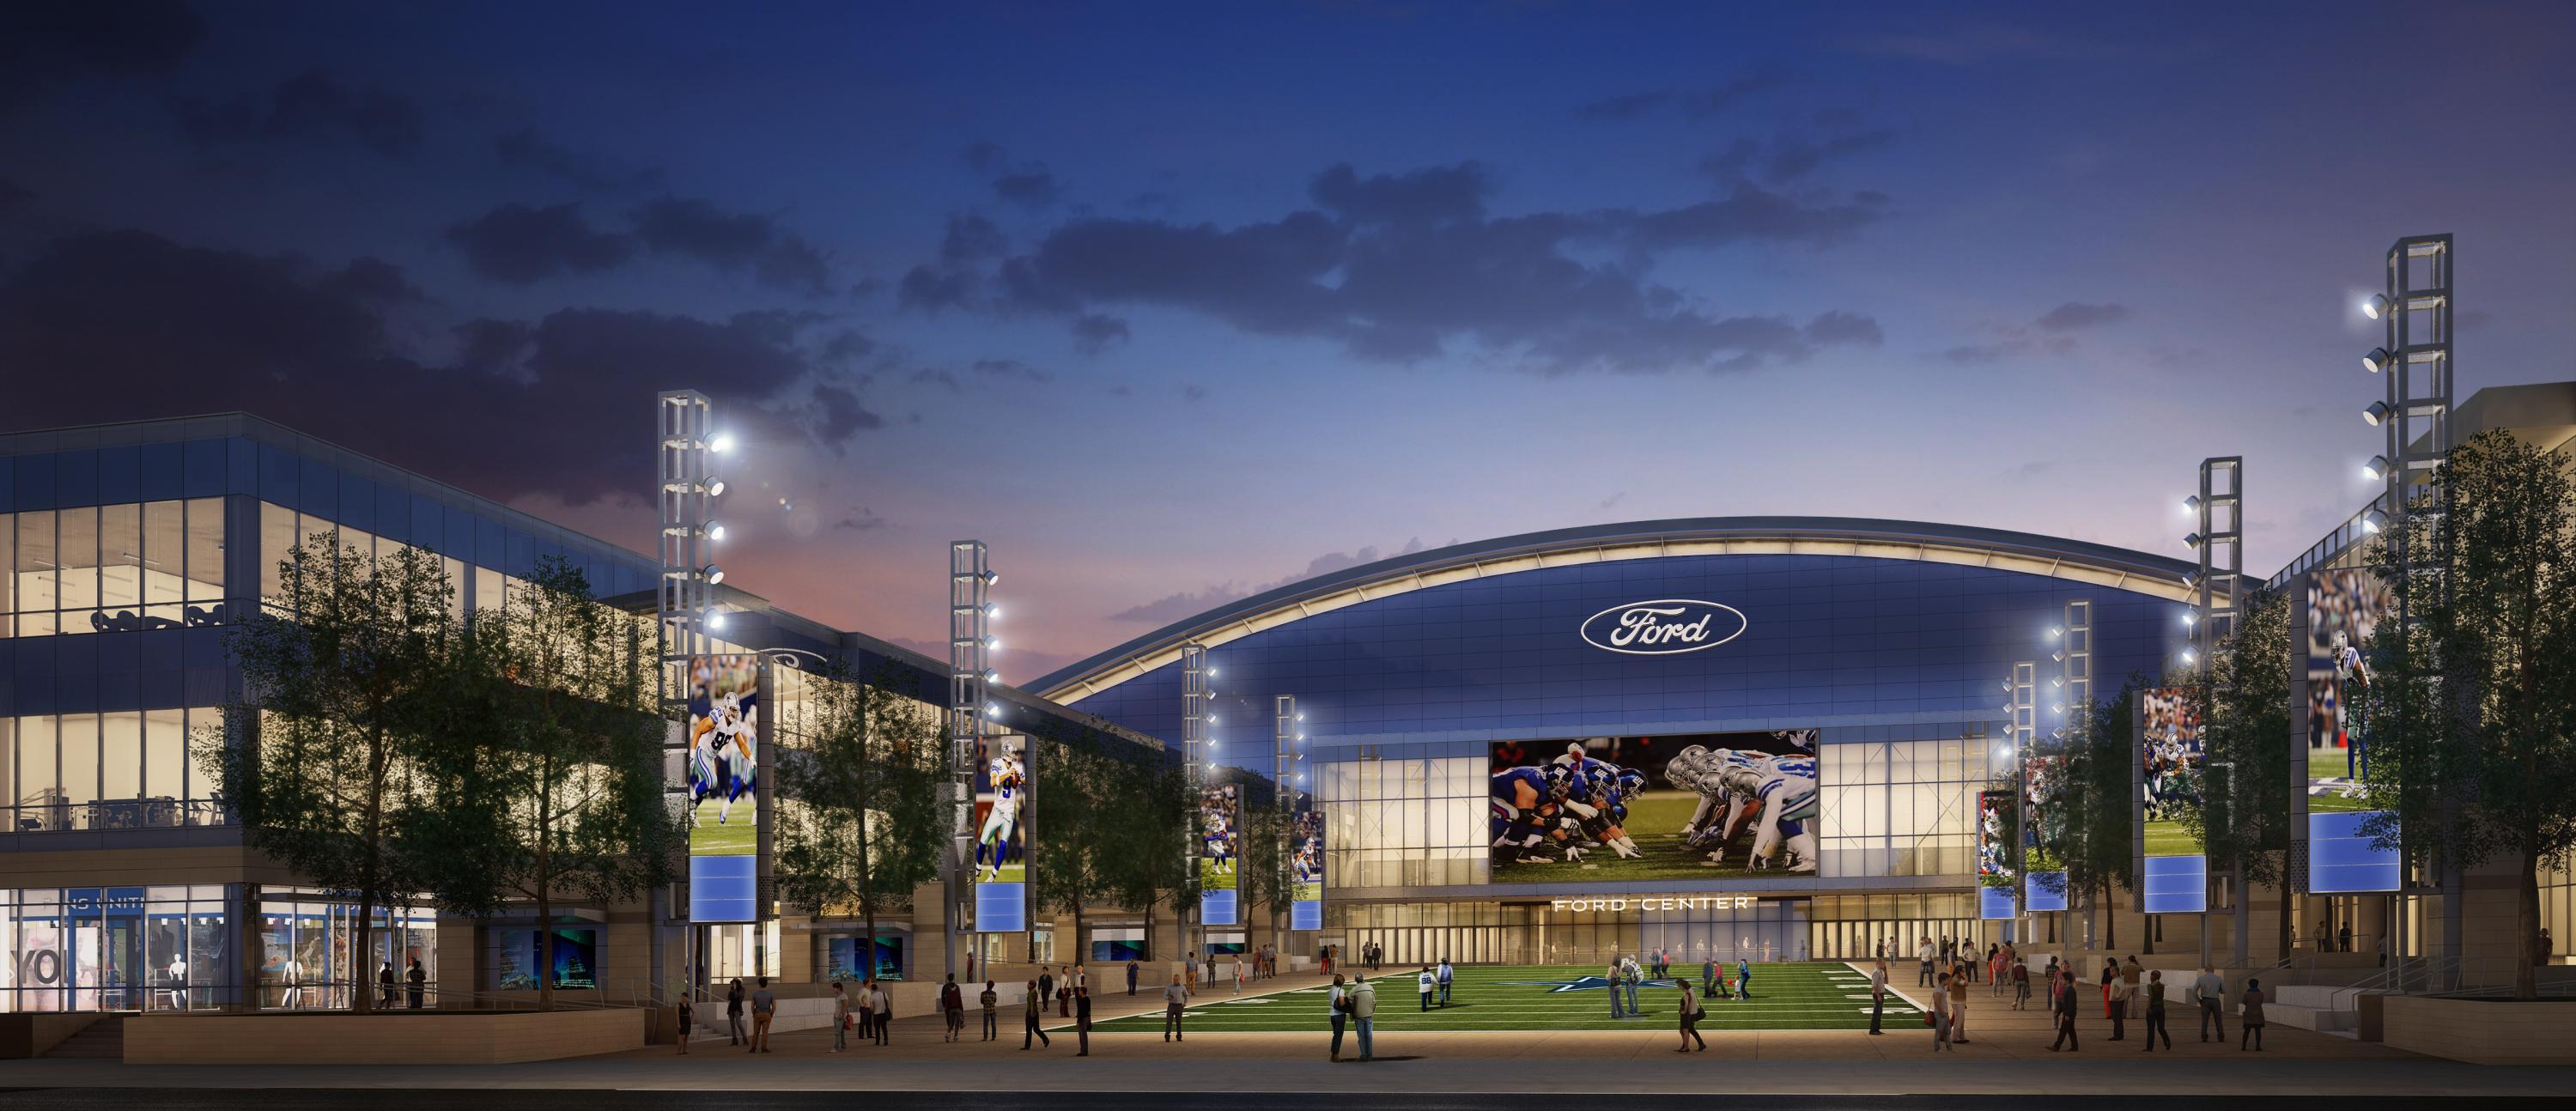 Dallas cowboys open 1 5 billion mixed use hq practice facility with detroit lions connection